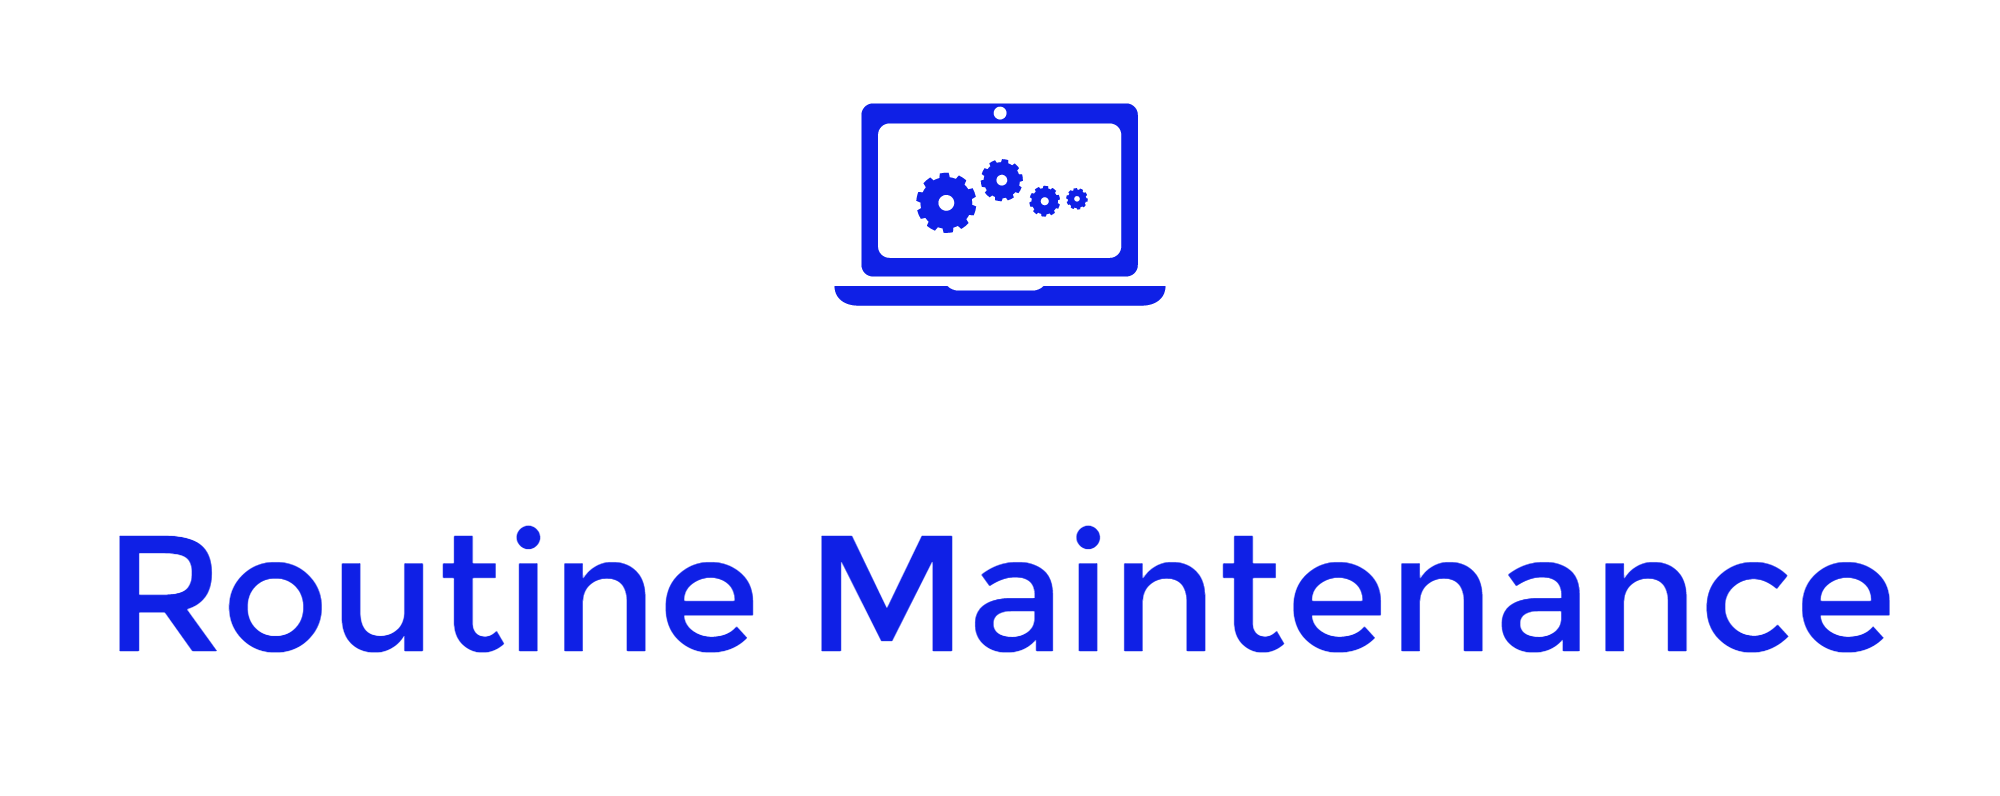 Routine Maintenance-logo.png